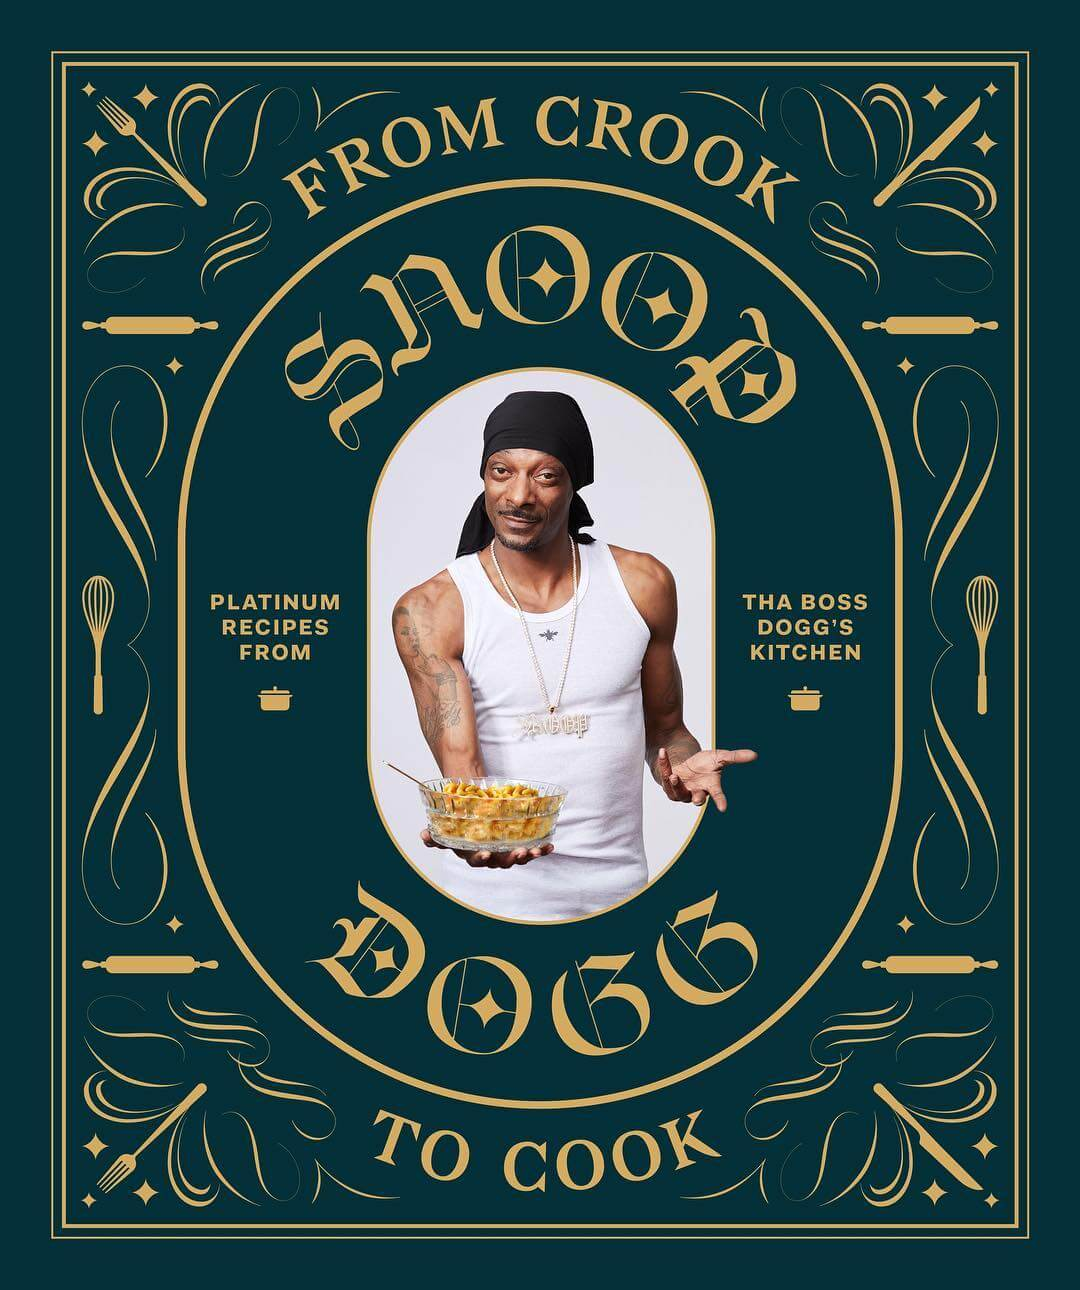 Snoop dogg cookbook 'from crook to cook'